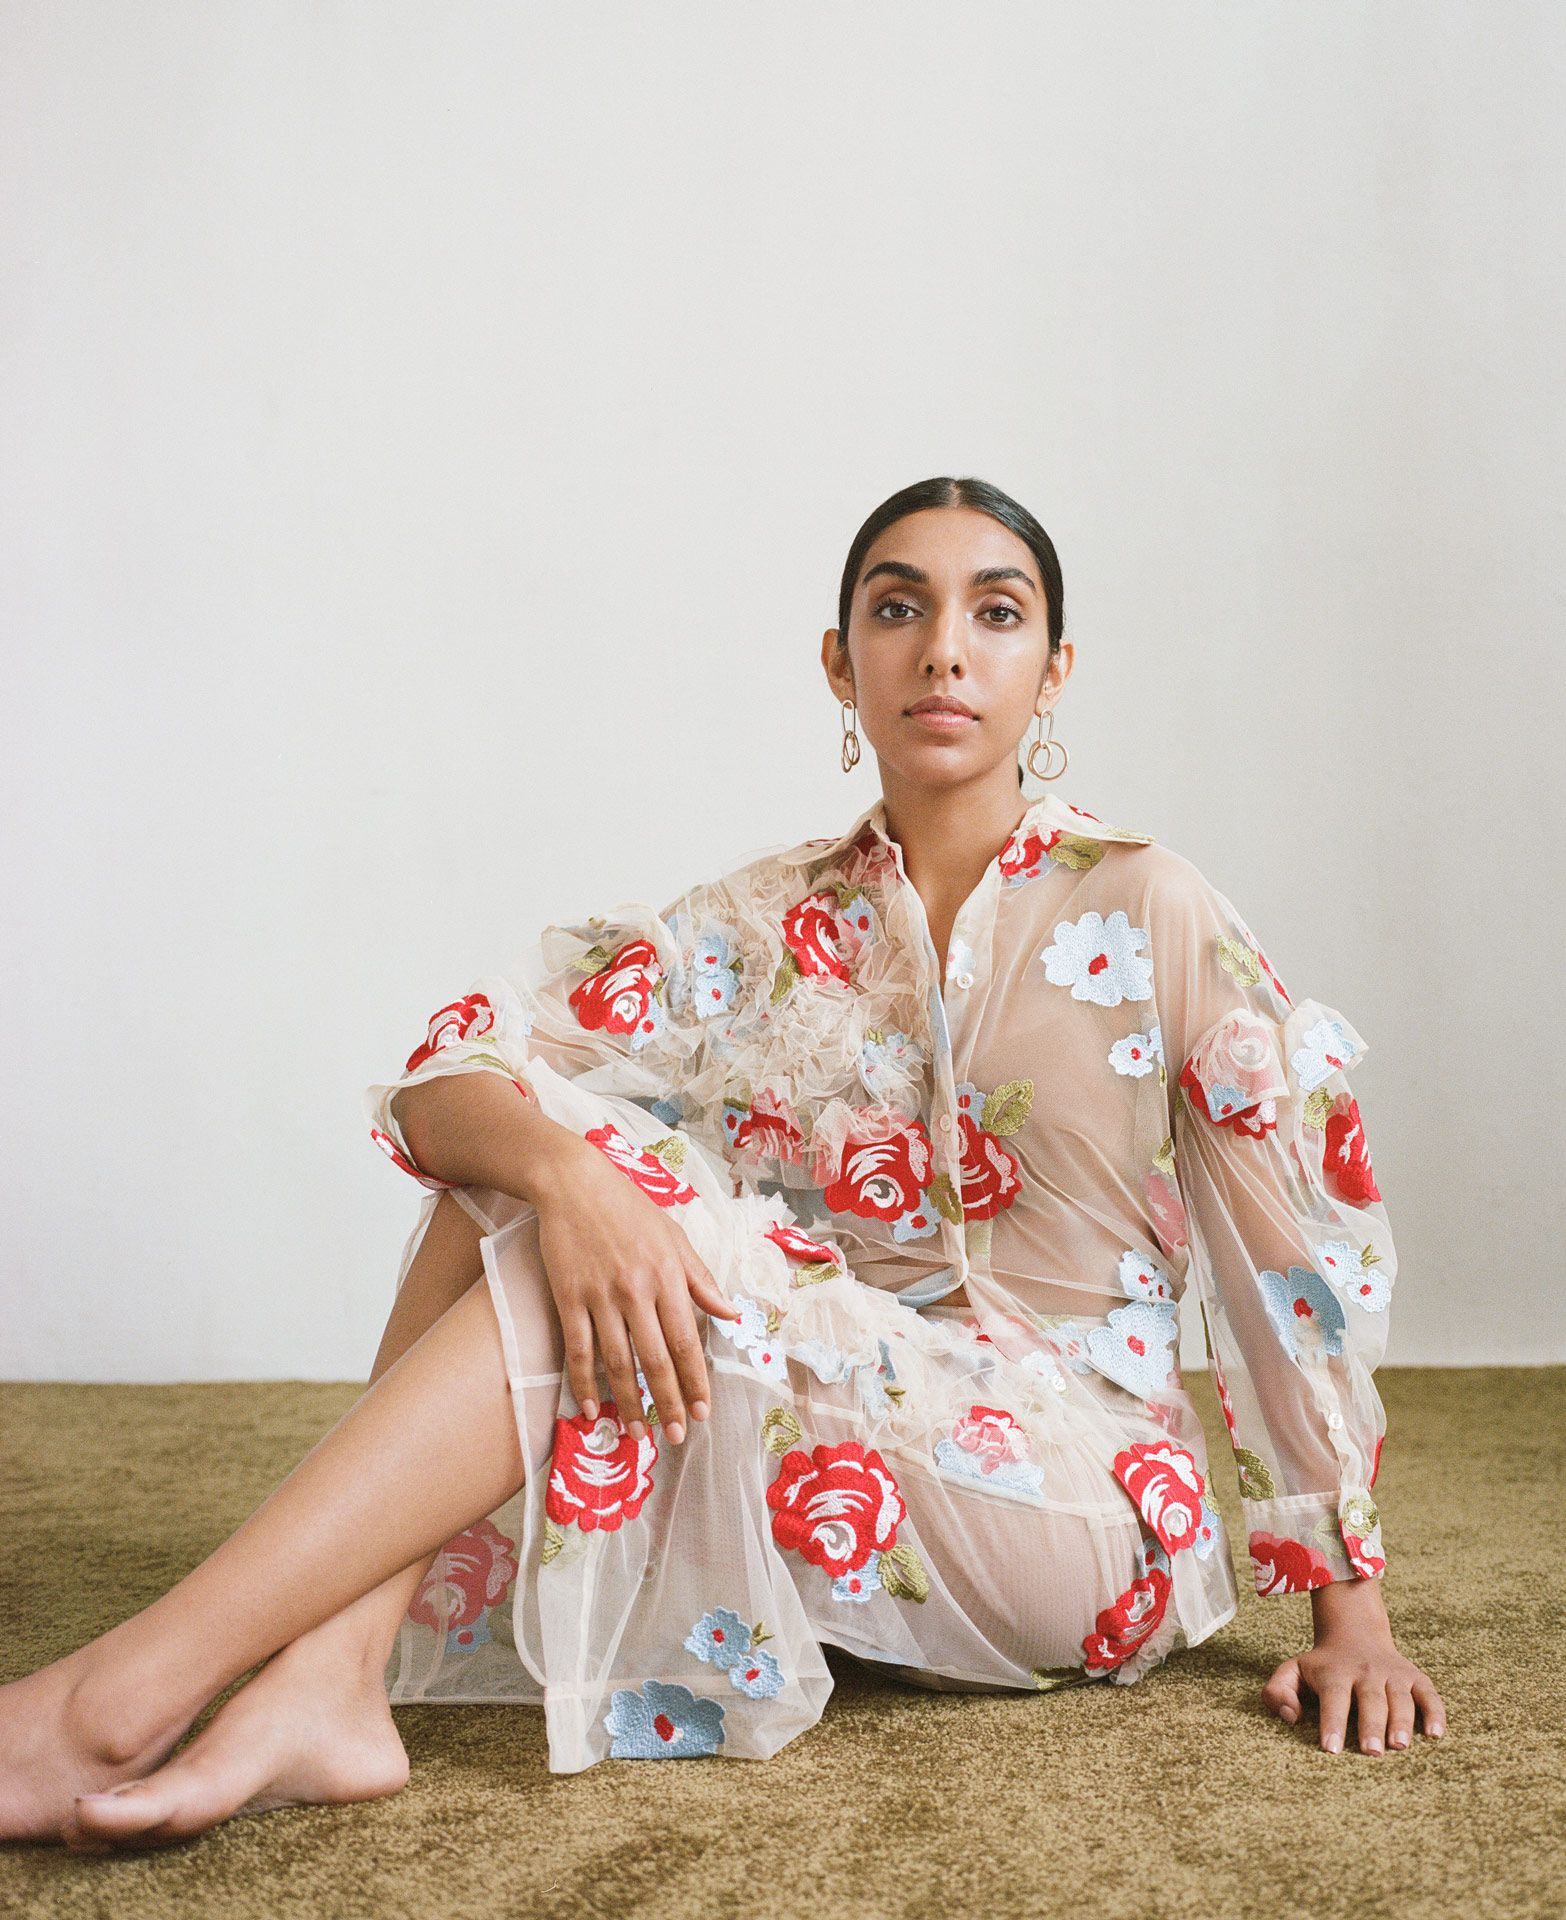 writer Rupi Kaur wearing flower dress looking at camera by Oumayma B Tanfous for Vogue Espana